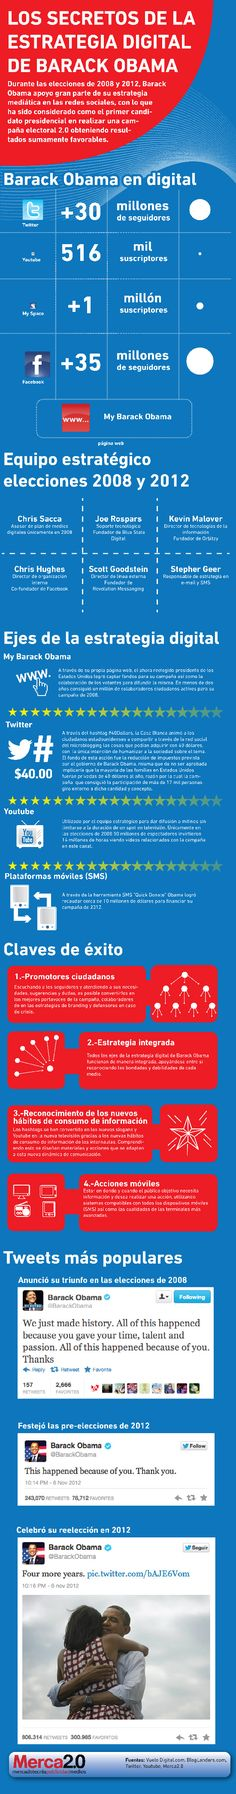 Los secretos de la estrategia digital de Barack #Obama #socialmediamarketing